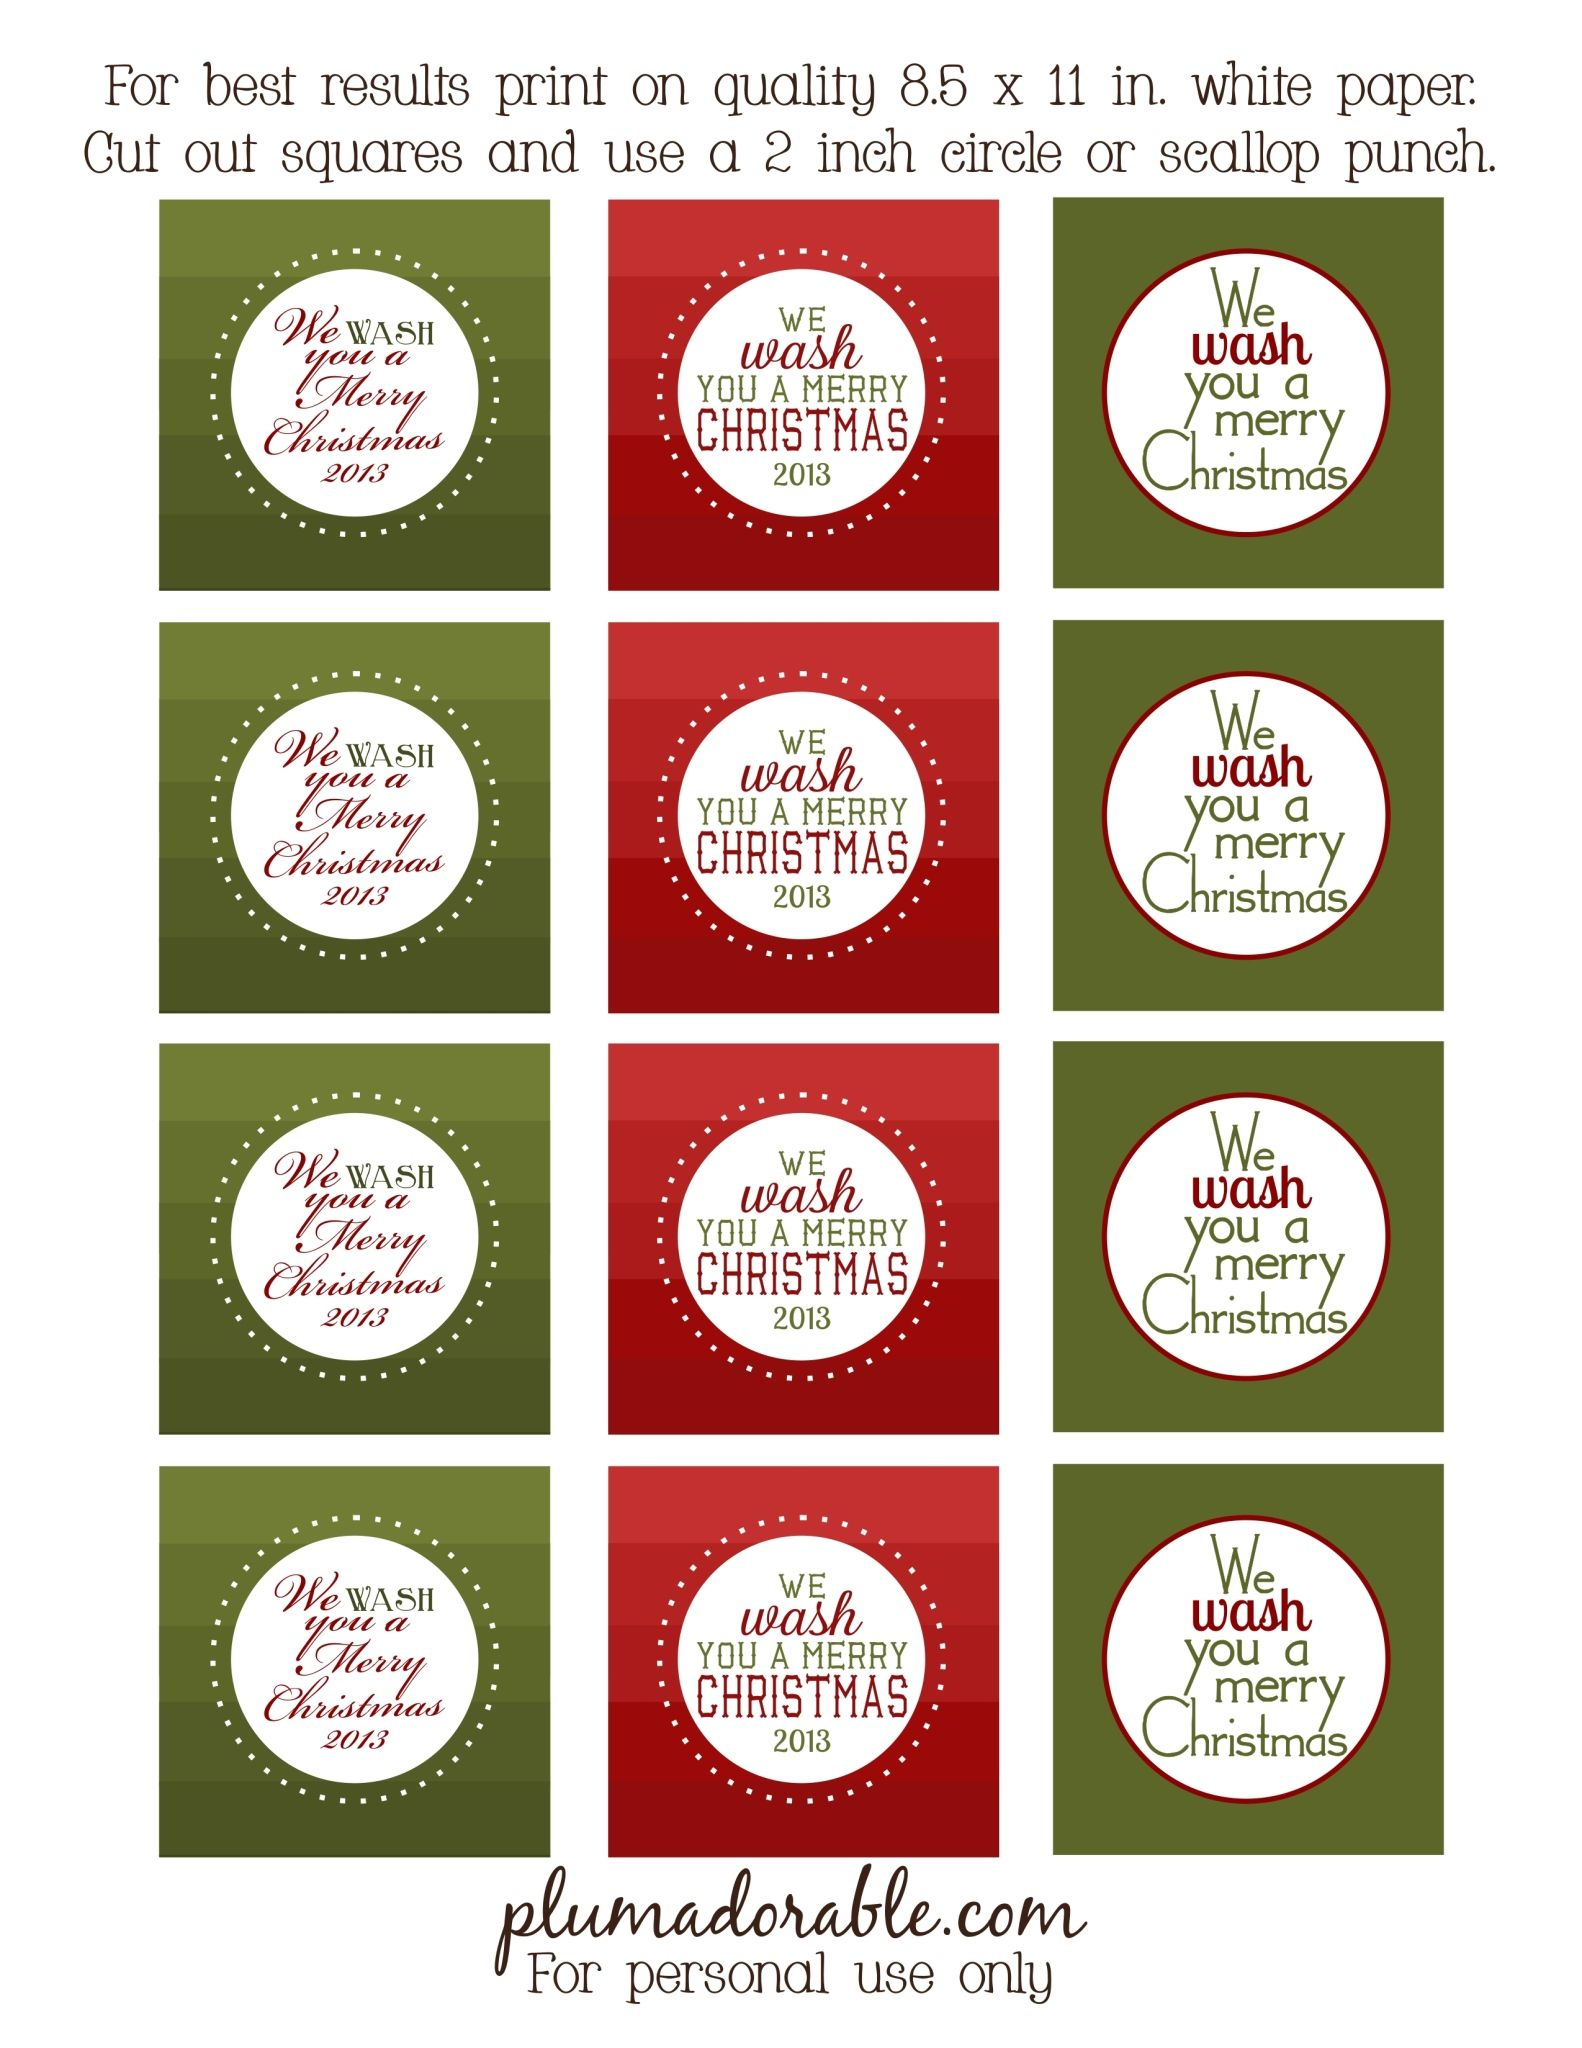 Sugar & Spiced Nuts | Recipe | Other | Pinterest | Christmas - We Wash You A Merry Christmas Free Printable